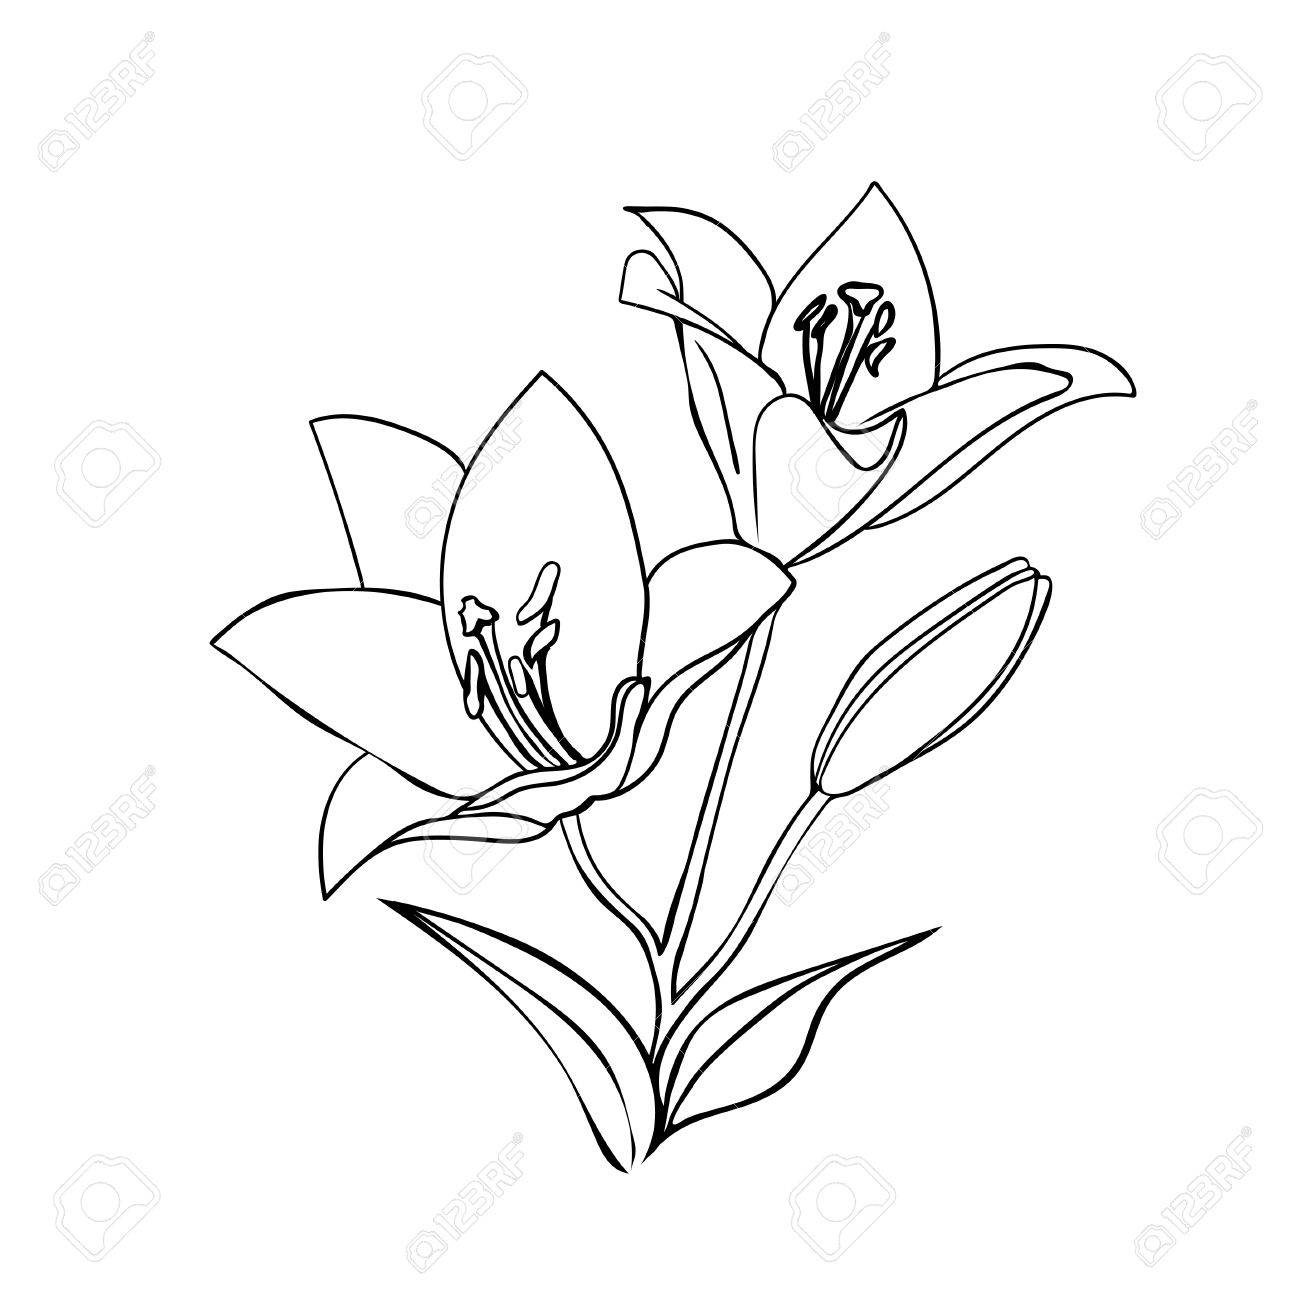 1300x1300 Lily Sketch. Black Outline On White Background. Vector